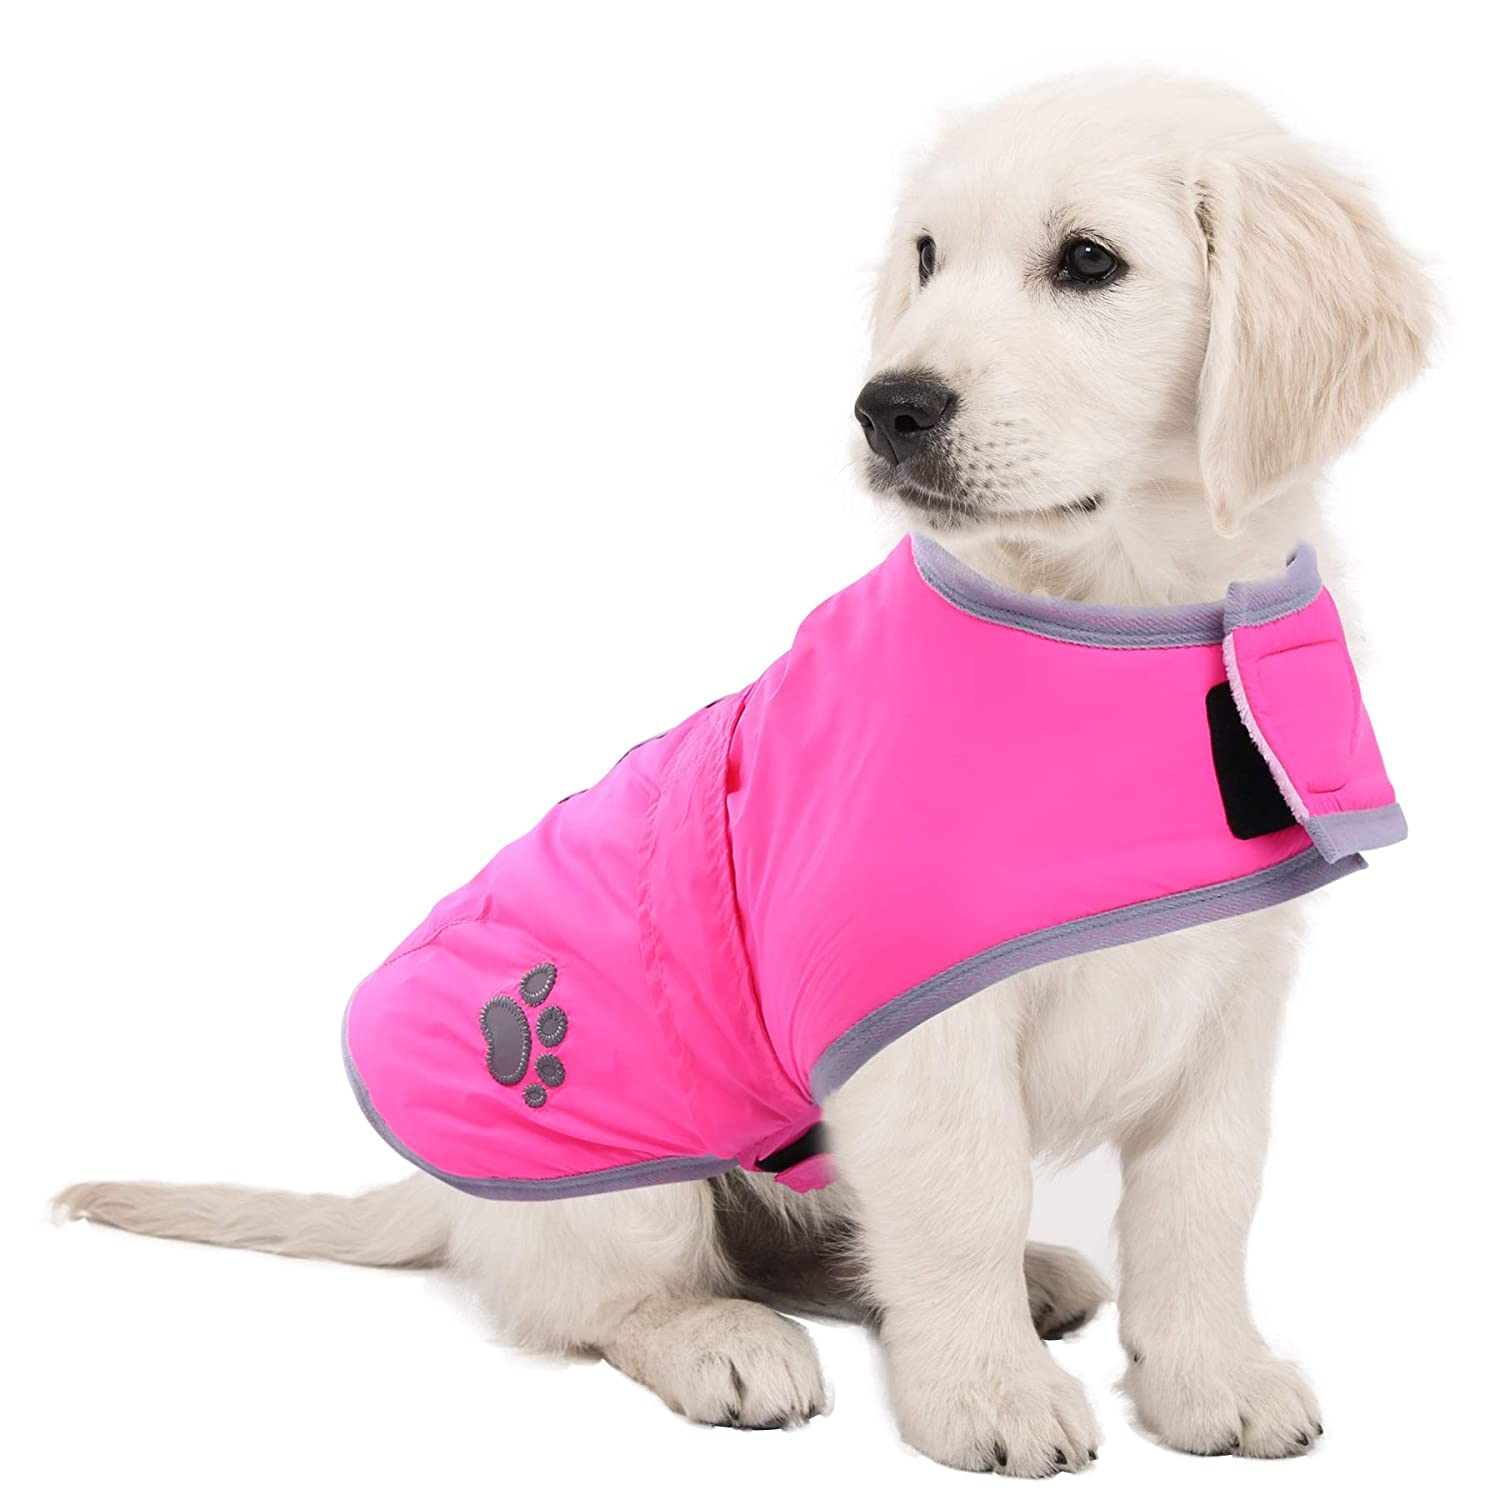 M(Back 11.81'' Neck 11.02'' Chest 16.14'') ASENKU Cold Weather Dog Coat Dog Jacket for Winter Reflective Reversible Warm Fleece Dog Clothes Waterproof Windproof Dog Vest for Small Medium Large Dogs